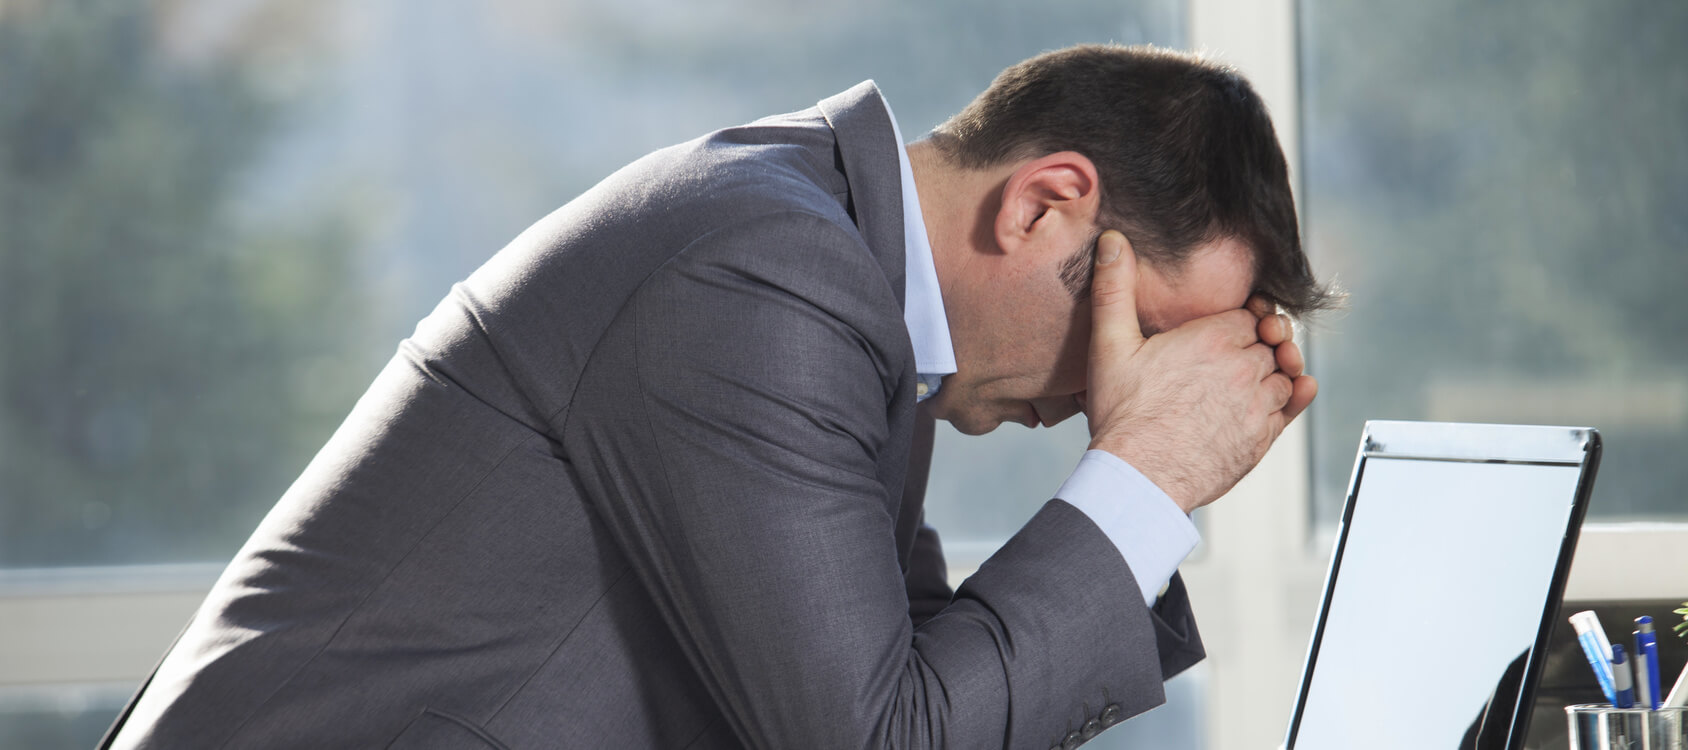 10 Common Business Mistakes And How To Avoid Them